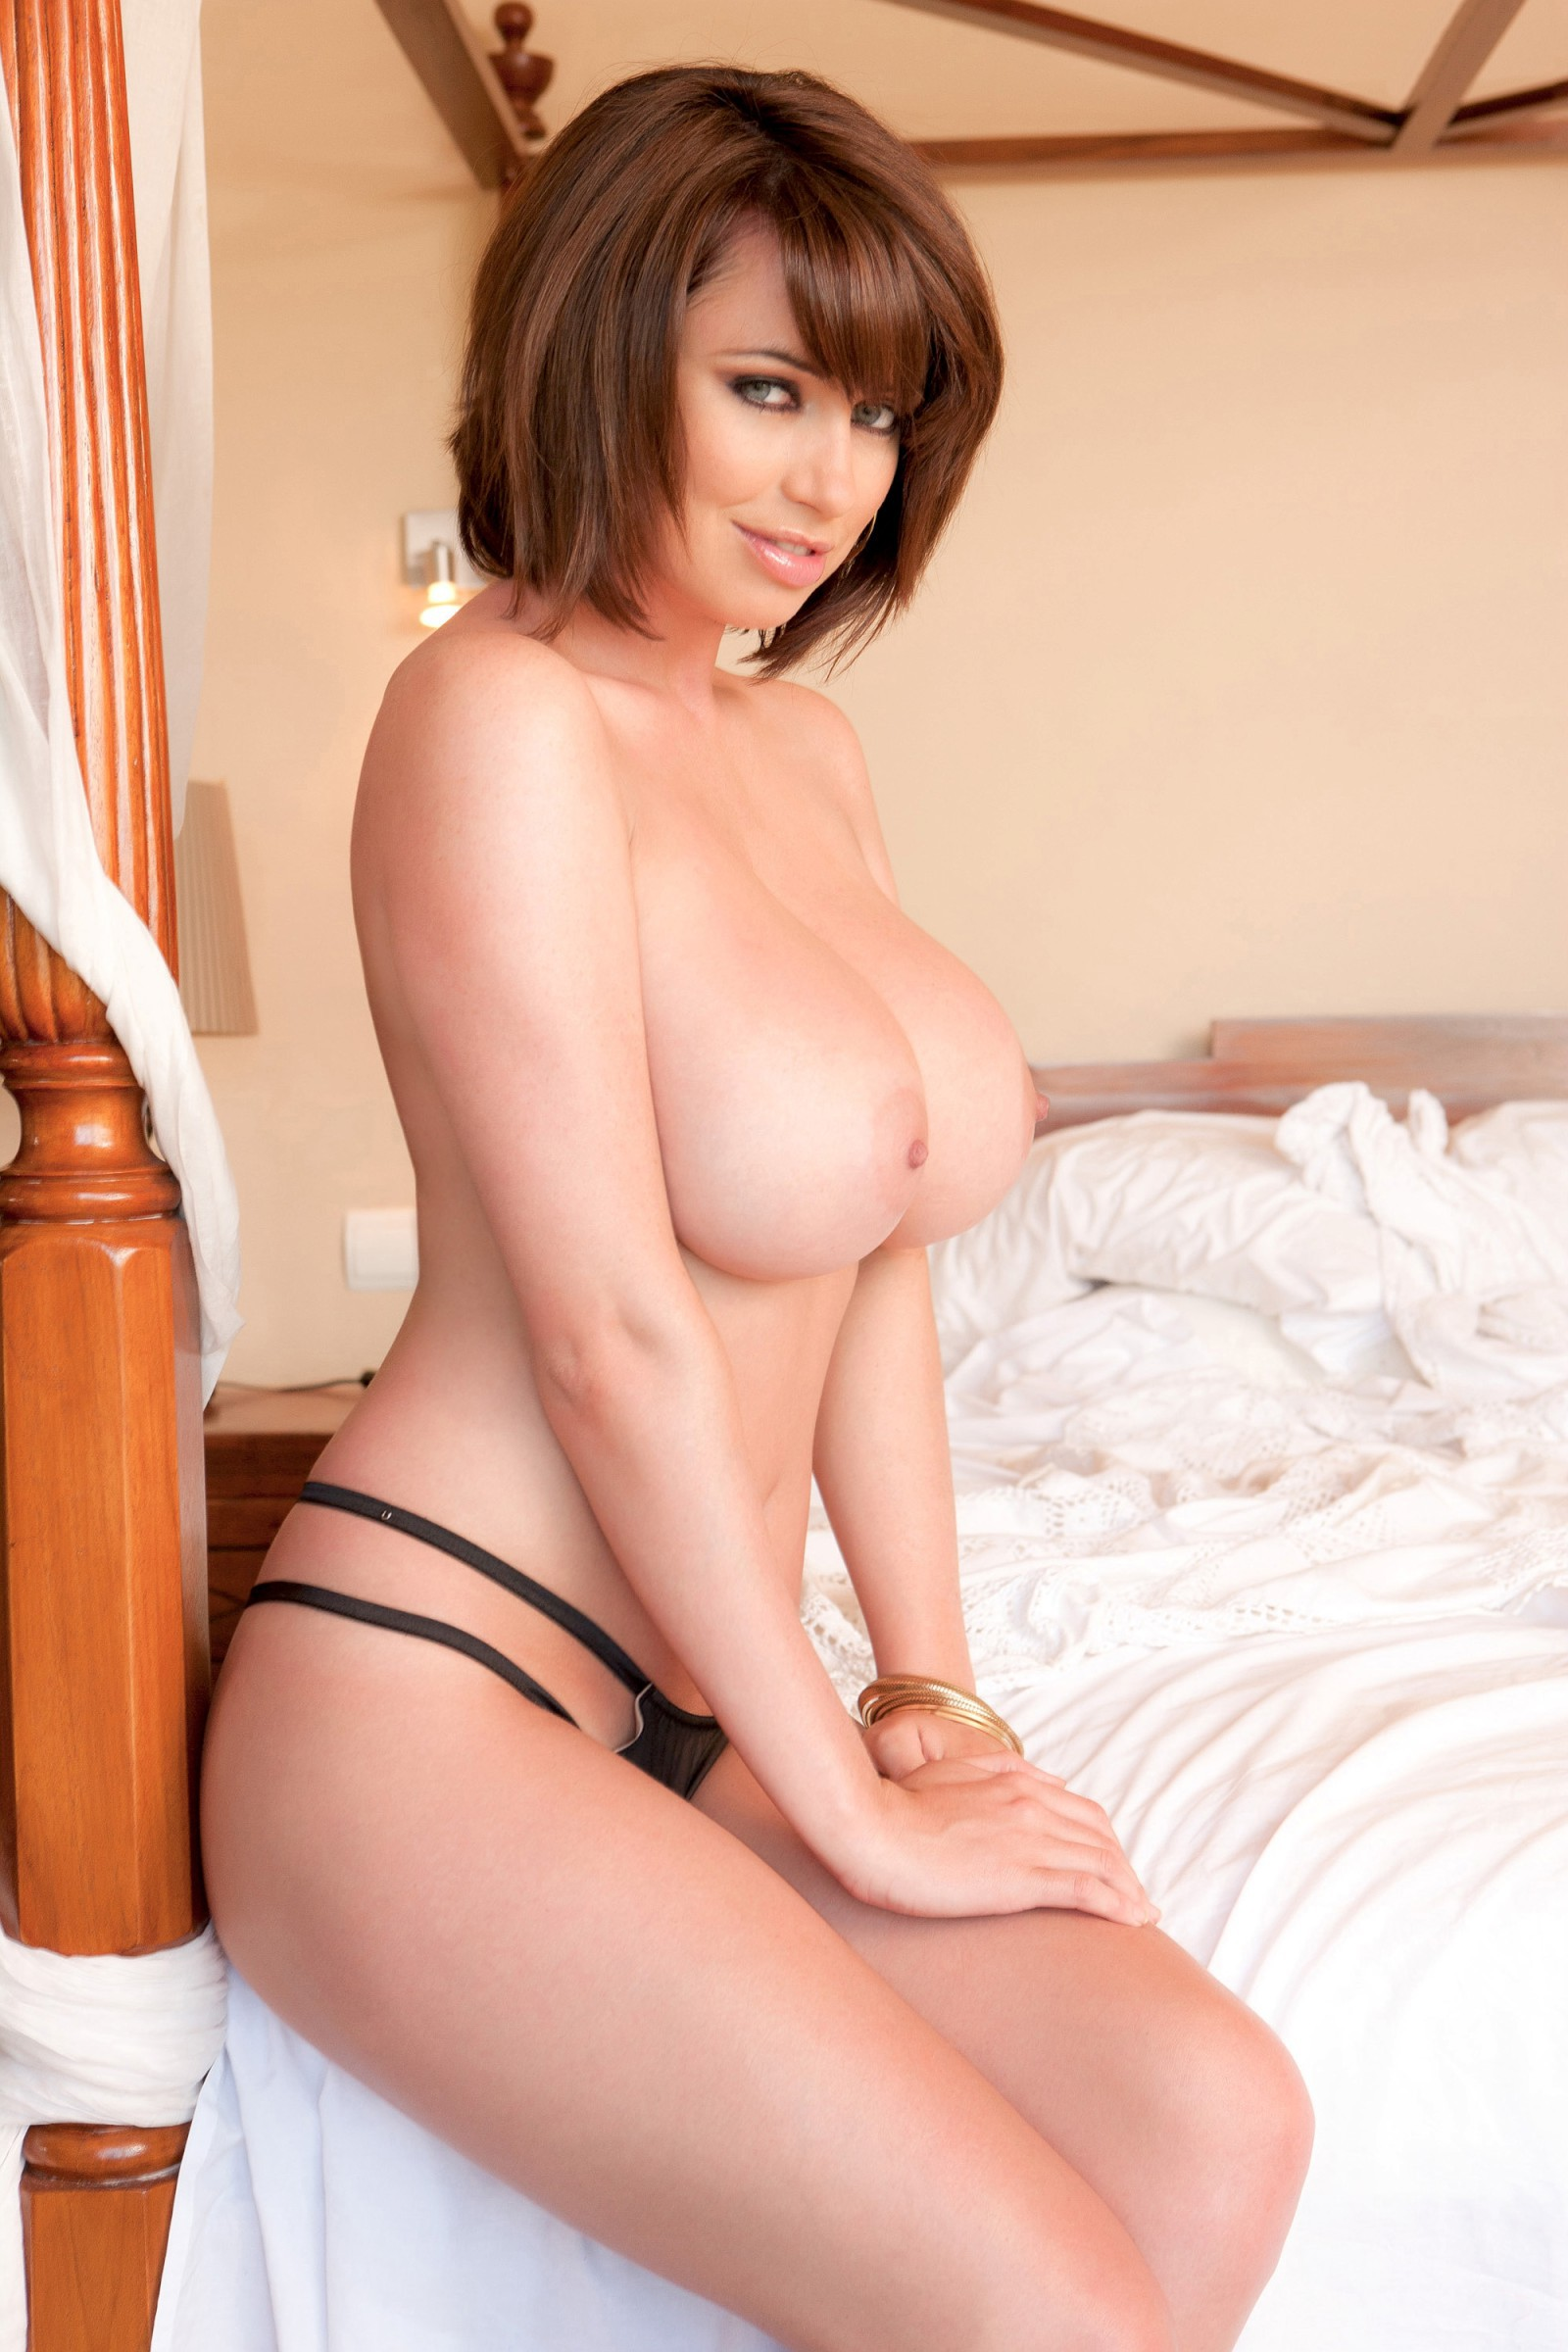 State Sophie howard boobs you thanks